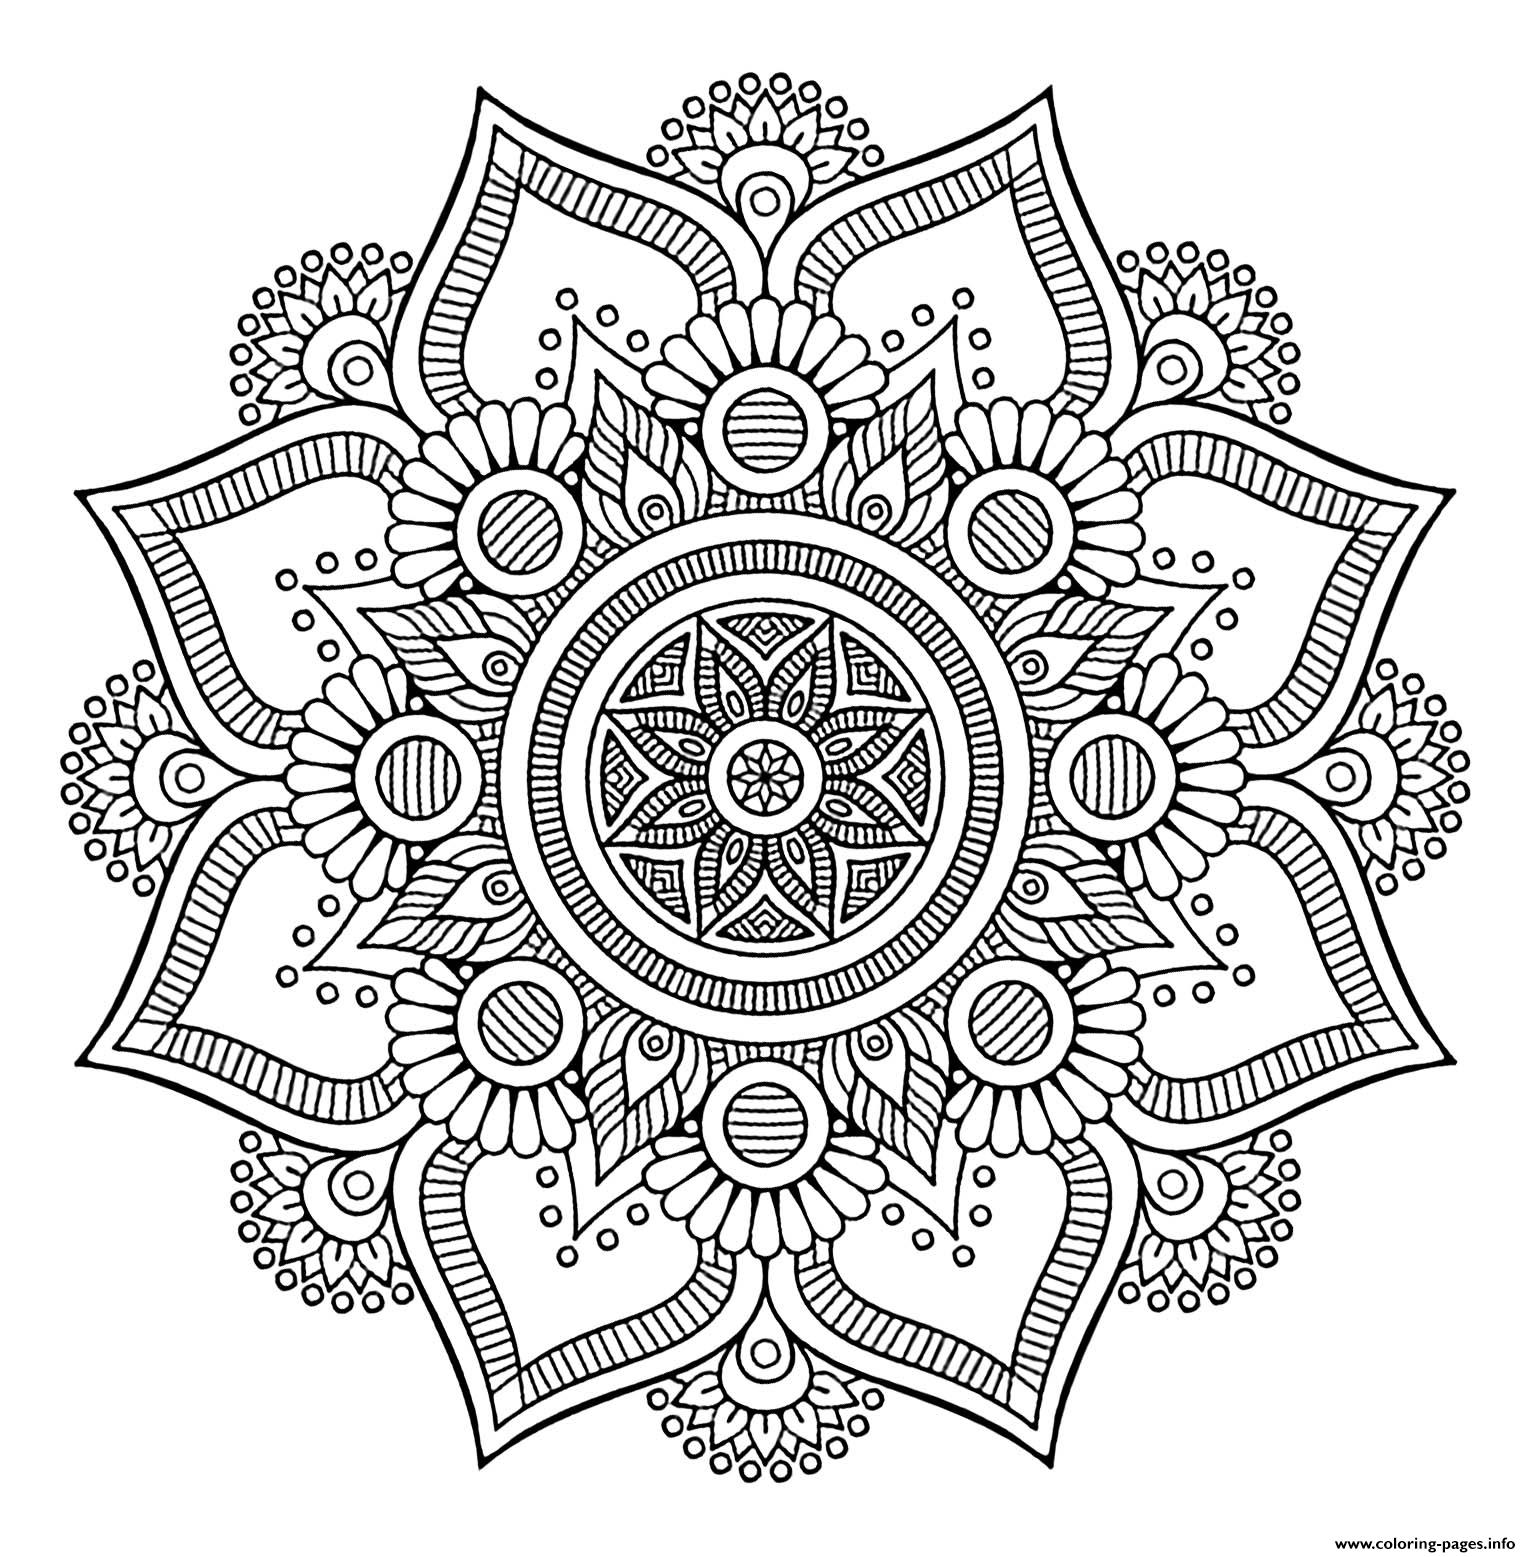 Mandala Big Flower 1 coloring pages